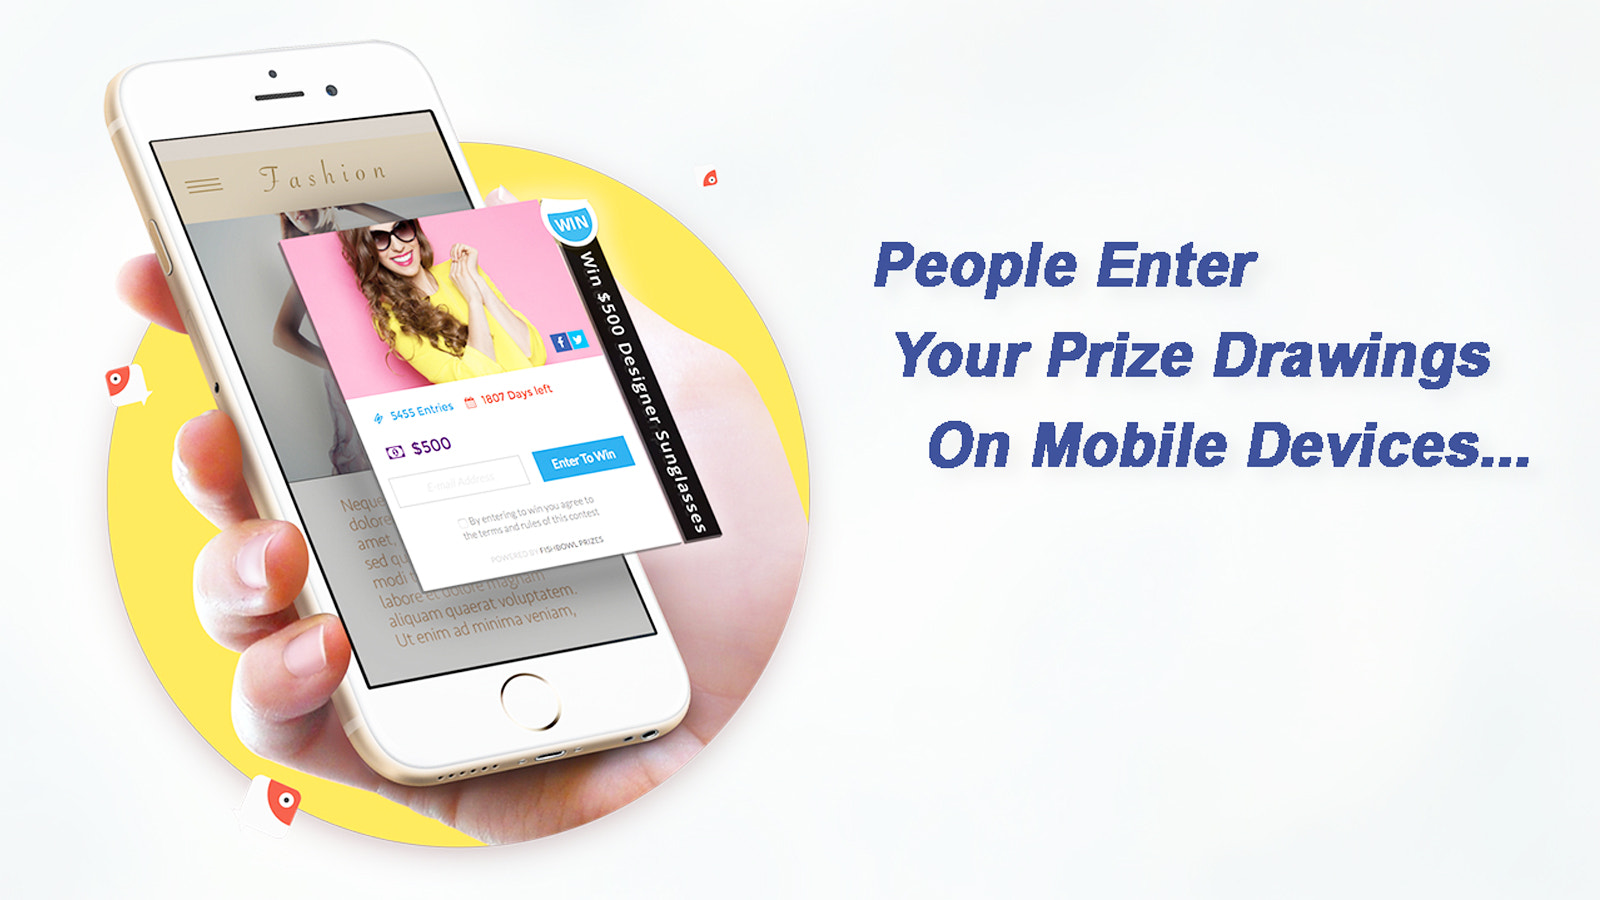 People Enter Your Fishbowl Prize Drawings on Mobile